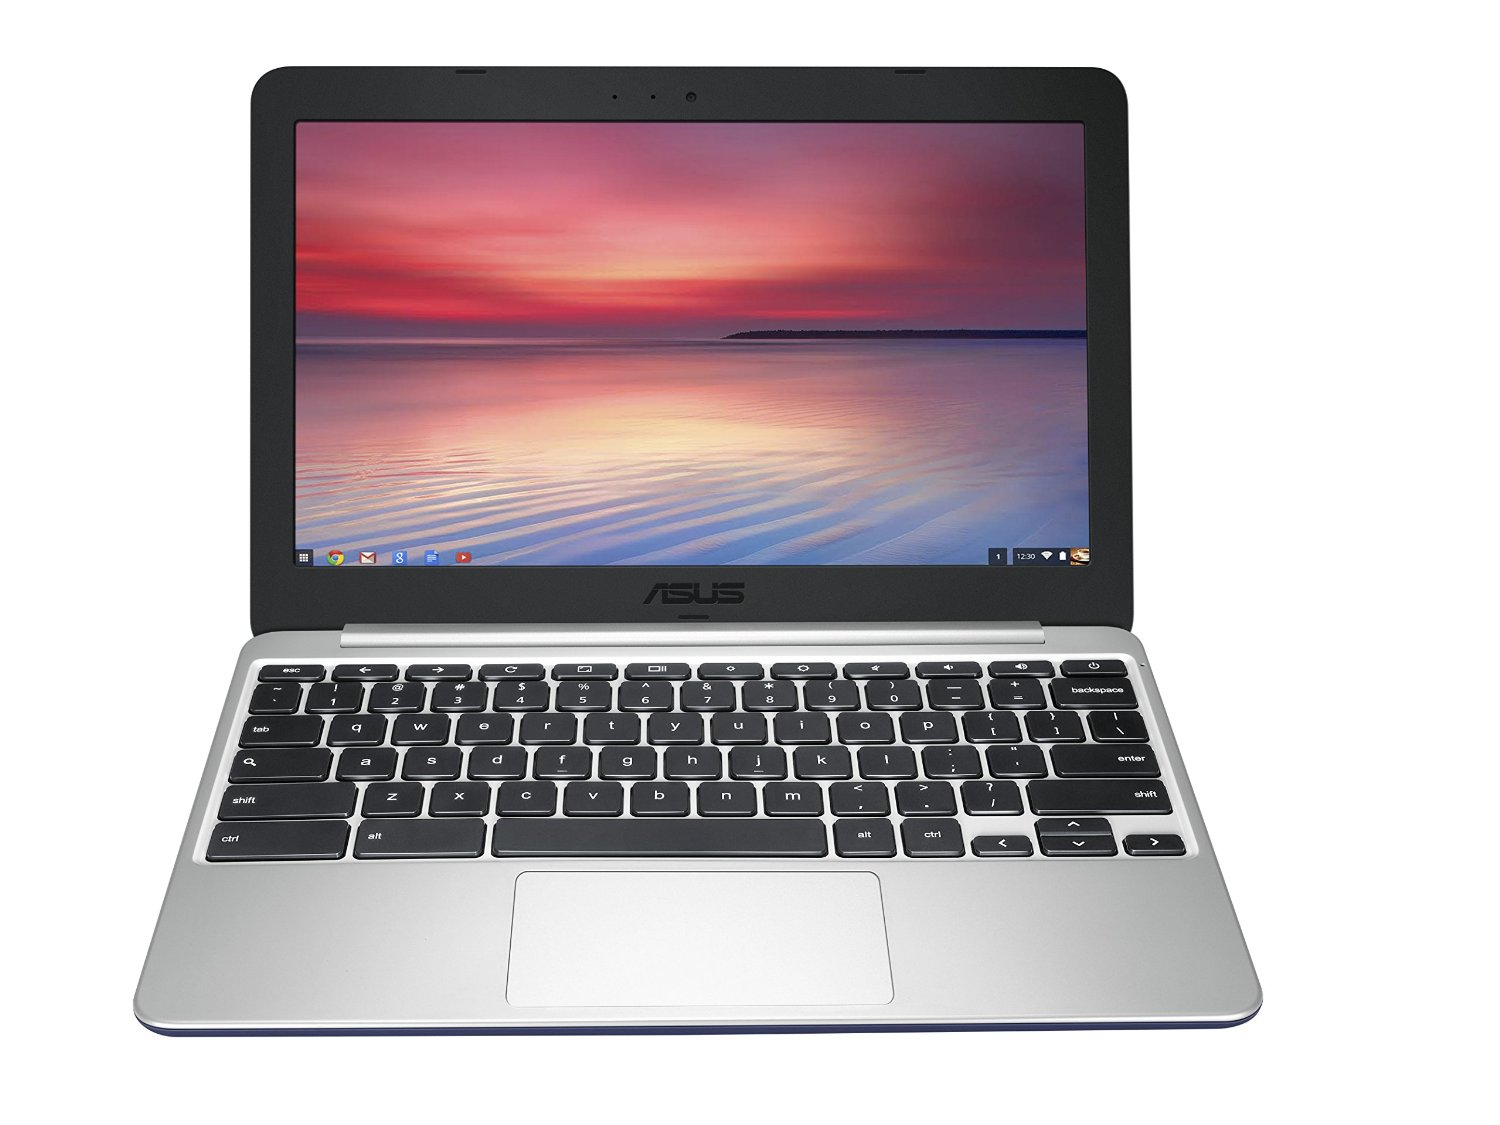 ASUS Chromebook C201PA-DS02 11.6-Inch Laptop